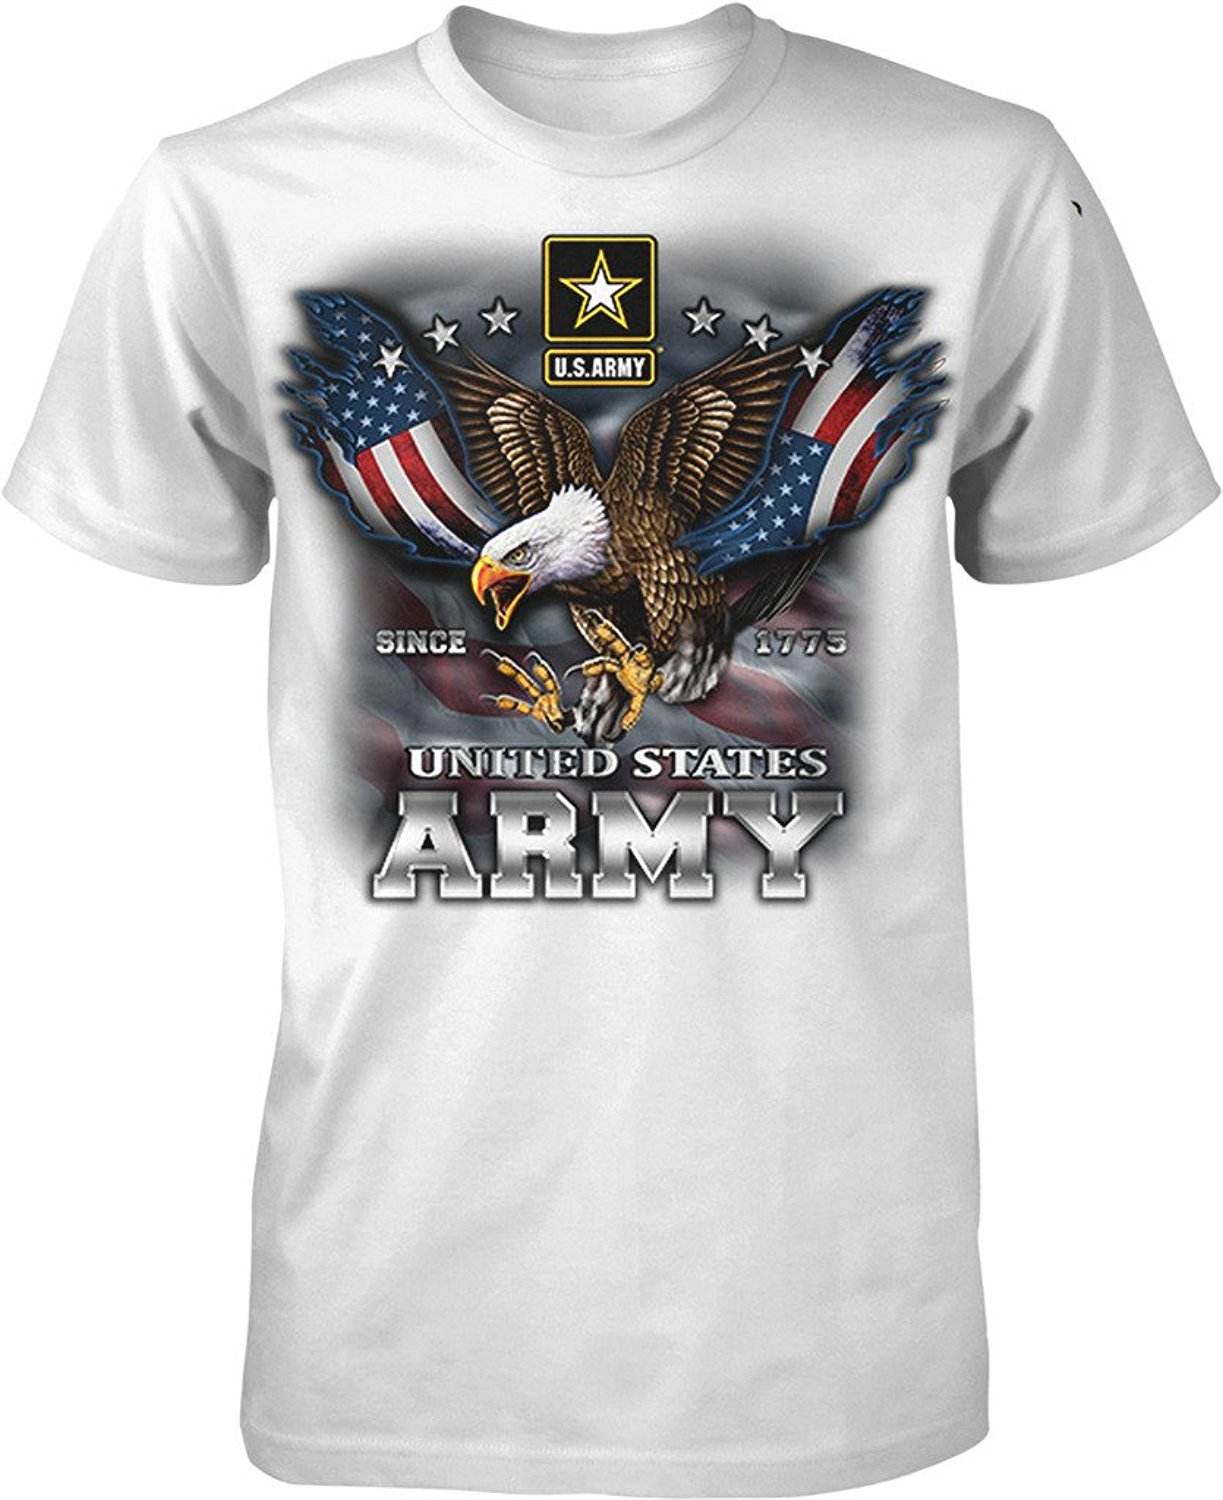 Compare Prices on American Eagle Shirts Mens- Online Shopping/Buy ...